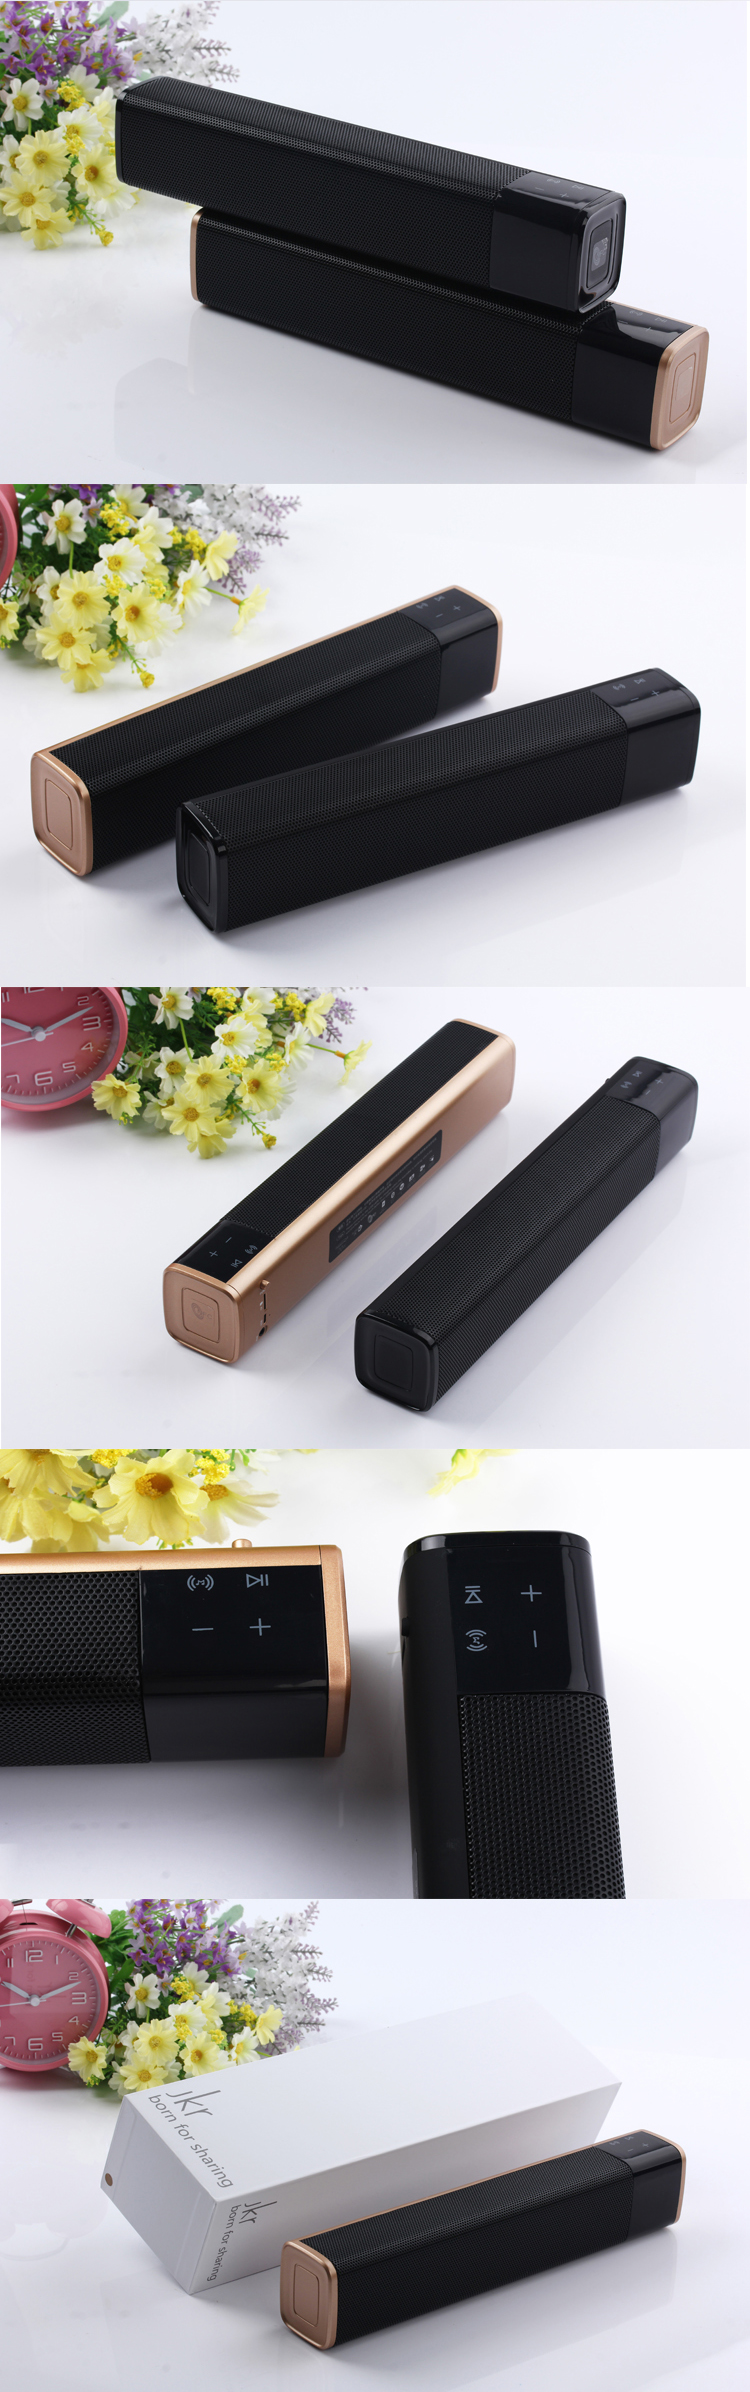 JKR-1000 Light perception control Mini Bluetooth Speaker Receiver Portable Wireless speaker Sound System 3Dstereo Music surround